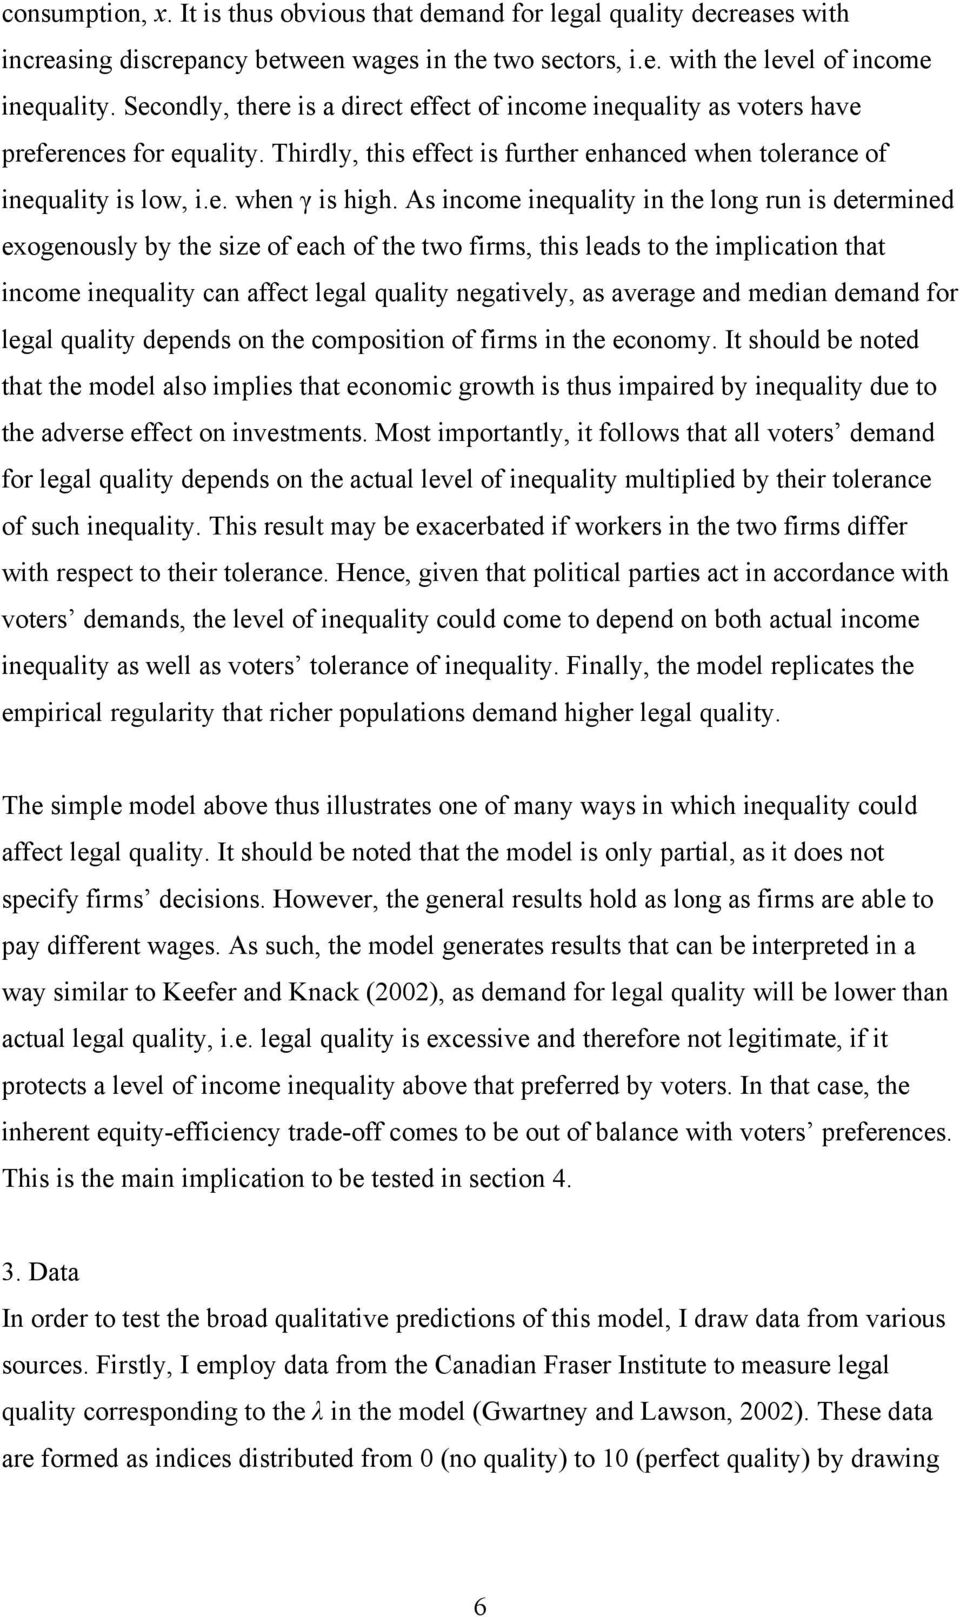 As income inequality in the long run is determined exogenously by the size of each of the two firms, this leads to the implication that income inequality can affect legal quality negatively, as